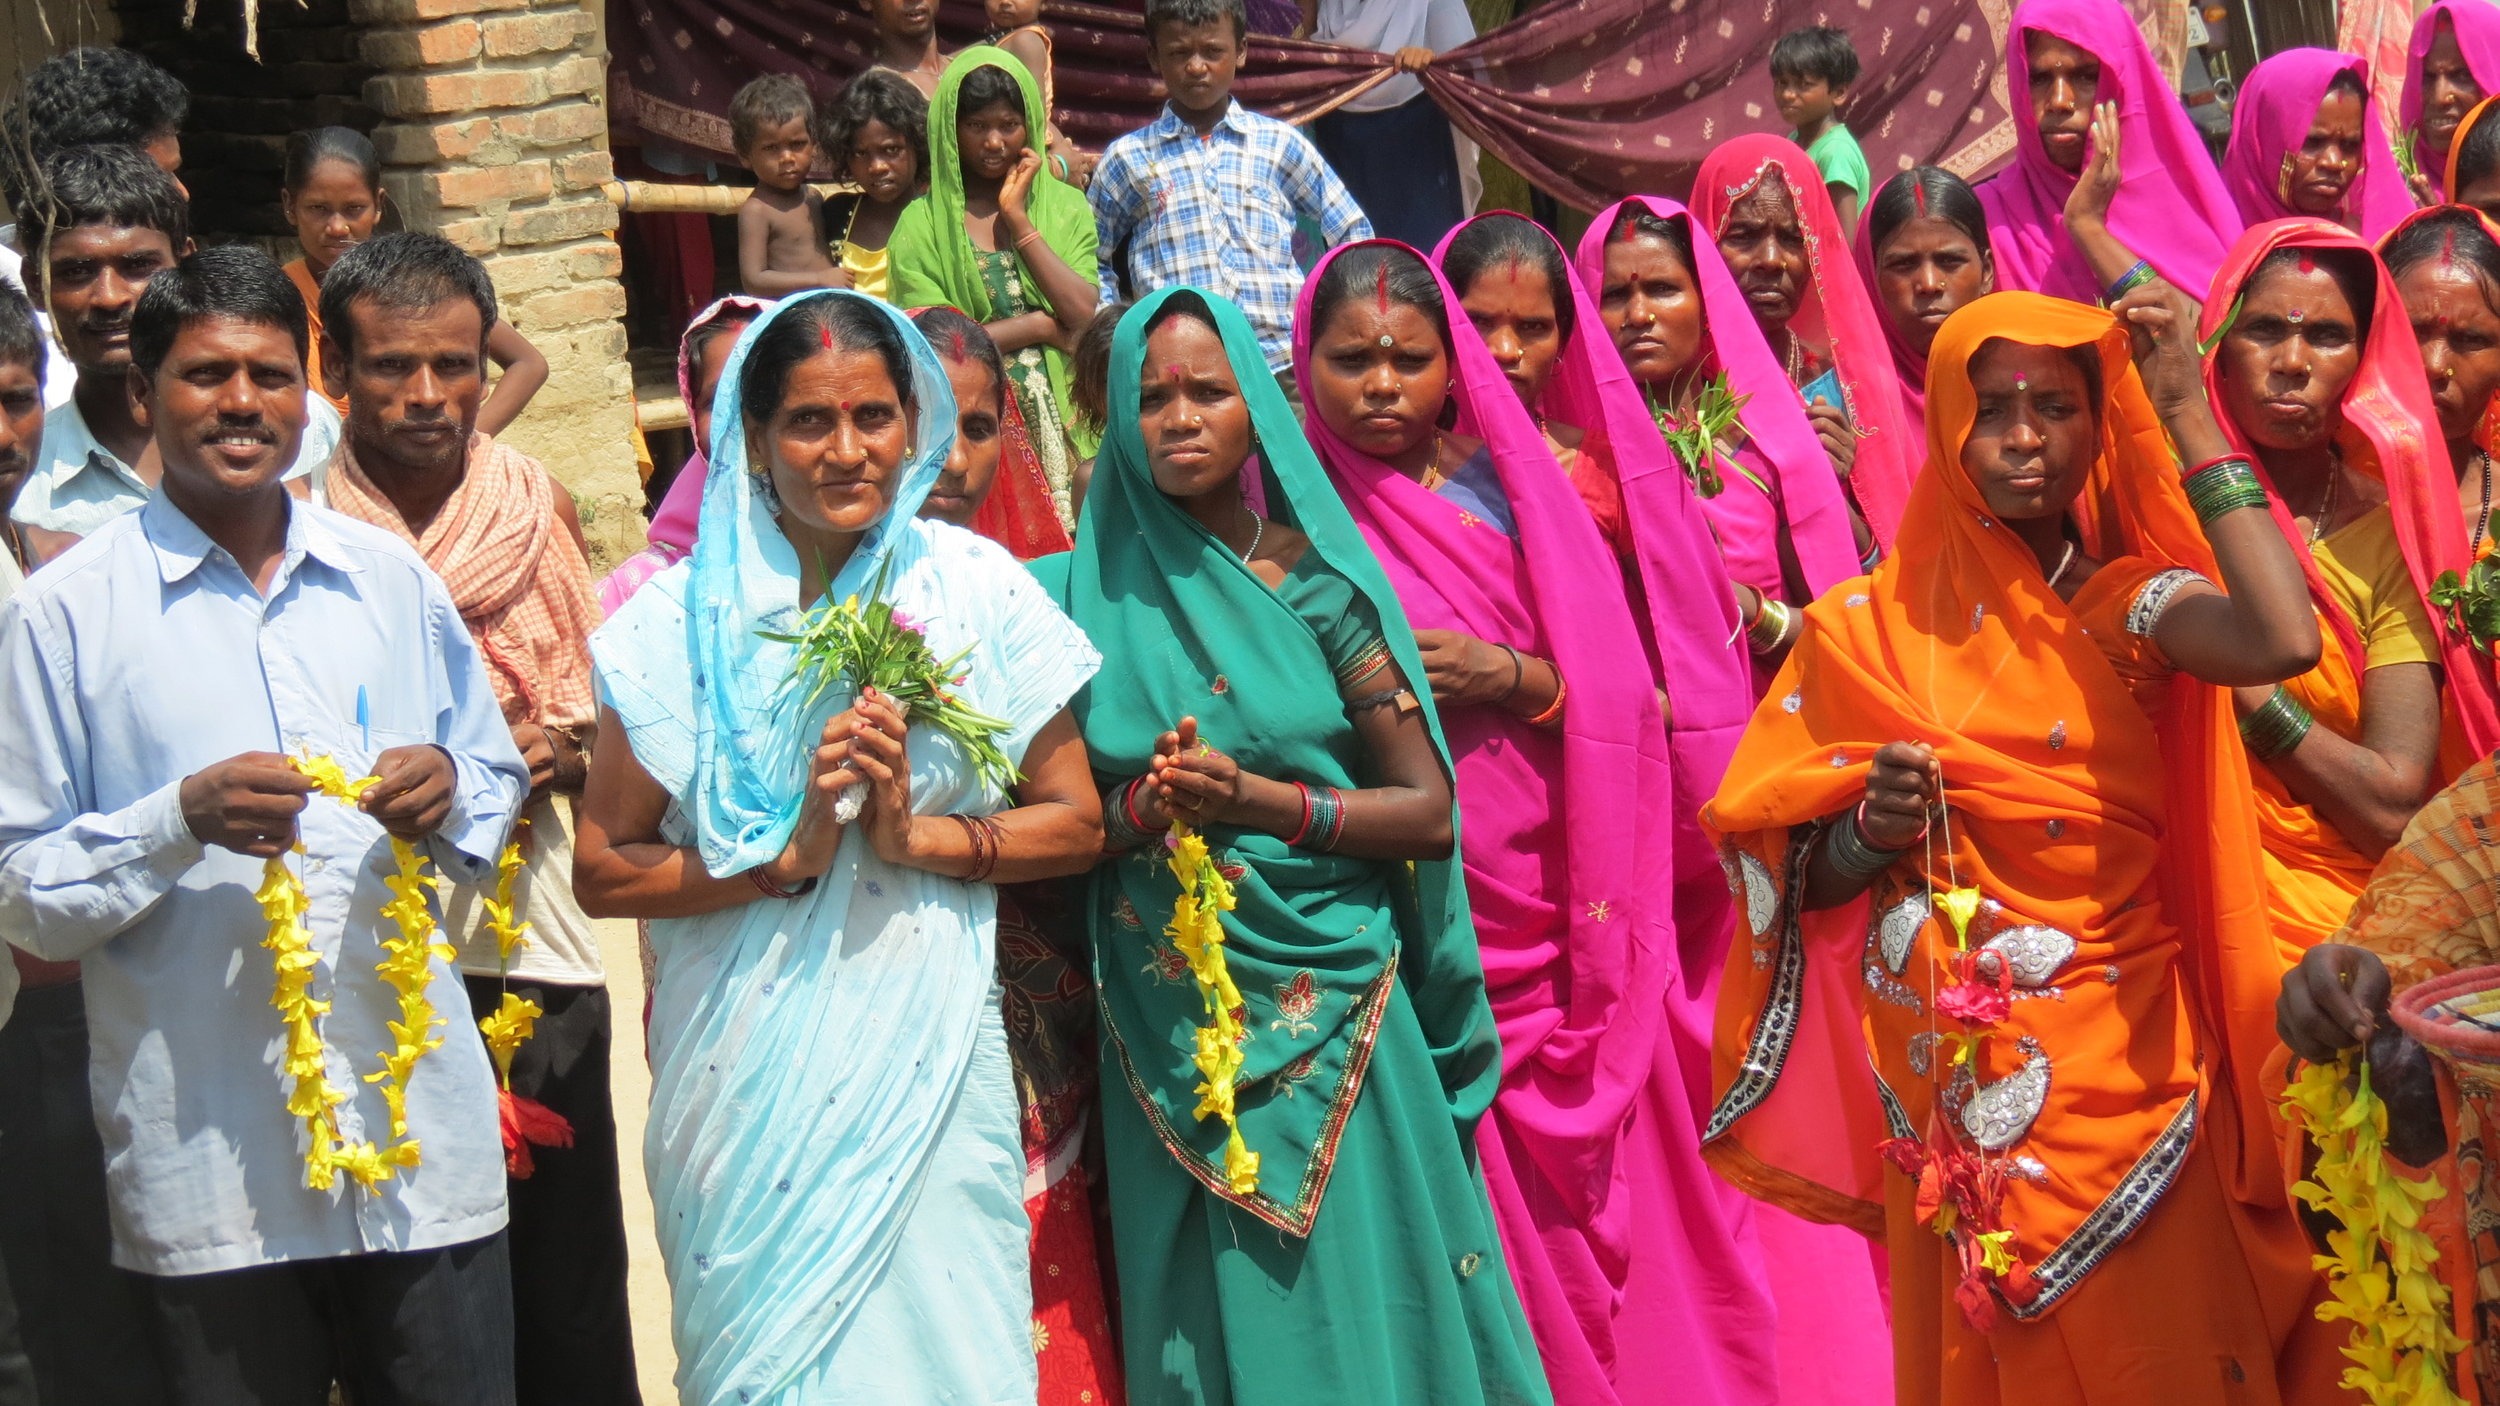 the people of a small community awaiting our arrival--with all sorts of flowers and gifts as tokens of their gratitude